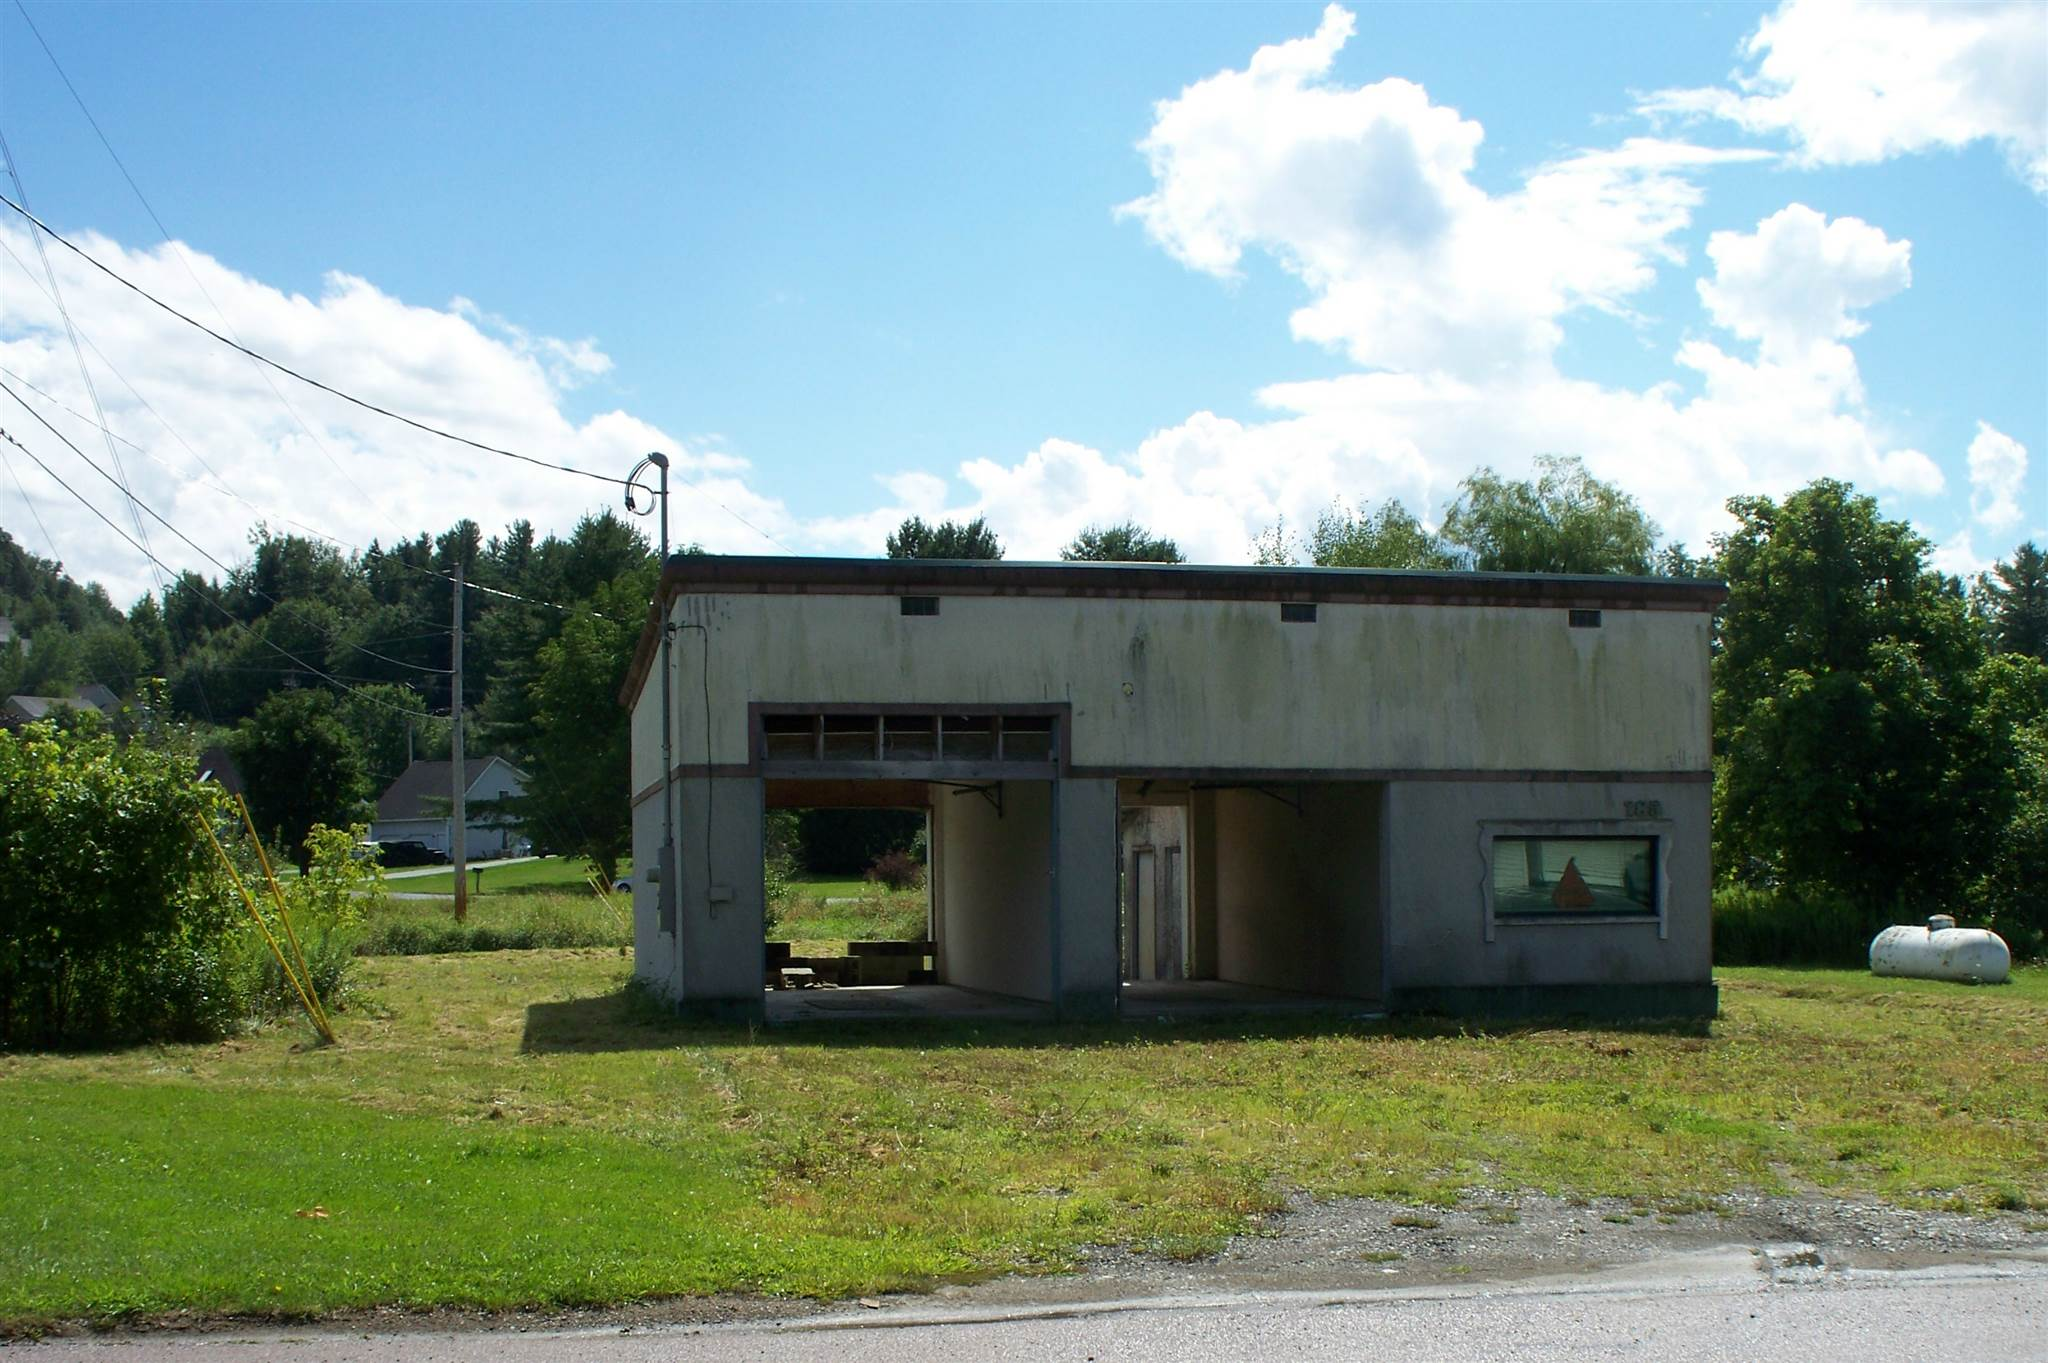 """Great location in Jeffersonville for a new business or to complete an existing car wash project.  Building and existing equipment being sold in """"as is"""" condition.  Located on Church Street enroute to Smuggler's Notch Resort.  This is a high traffic area near the intersection of VT Routes 15 and Church Street.  Property offers 0.63 +/- acre lot. Building offers 1200 square feet with municipal water and sewage hookups.  High speed internet and cell phone coverage available at this location.   Many opportunities for this prime location."""